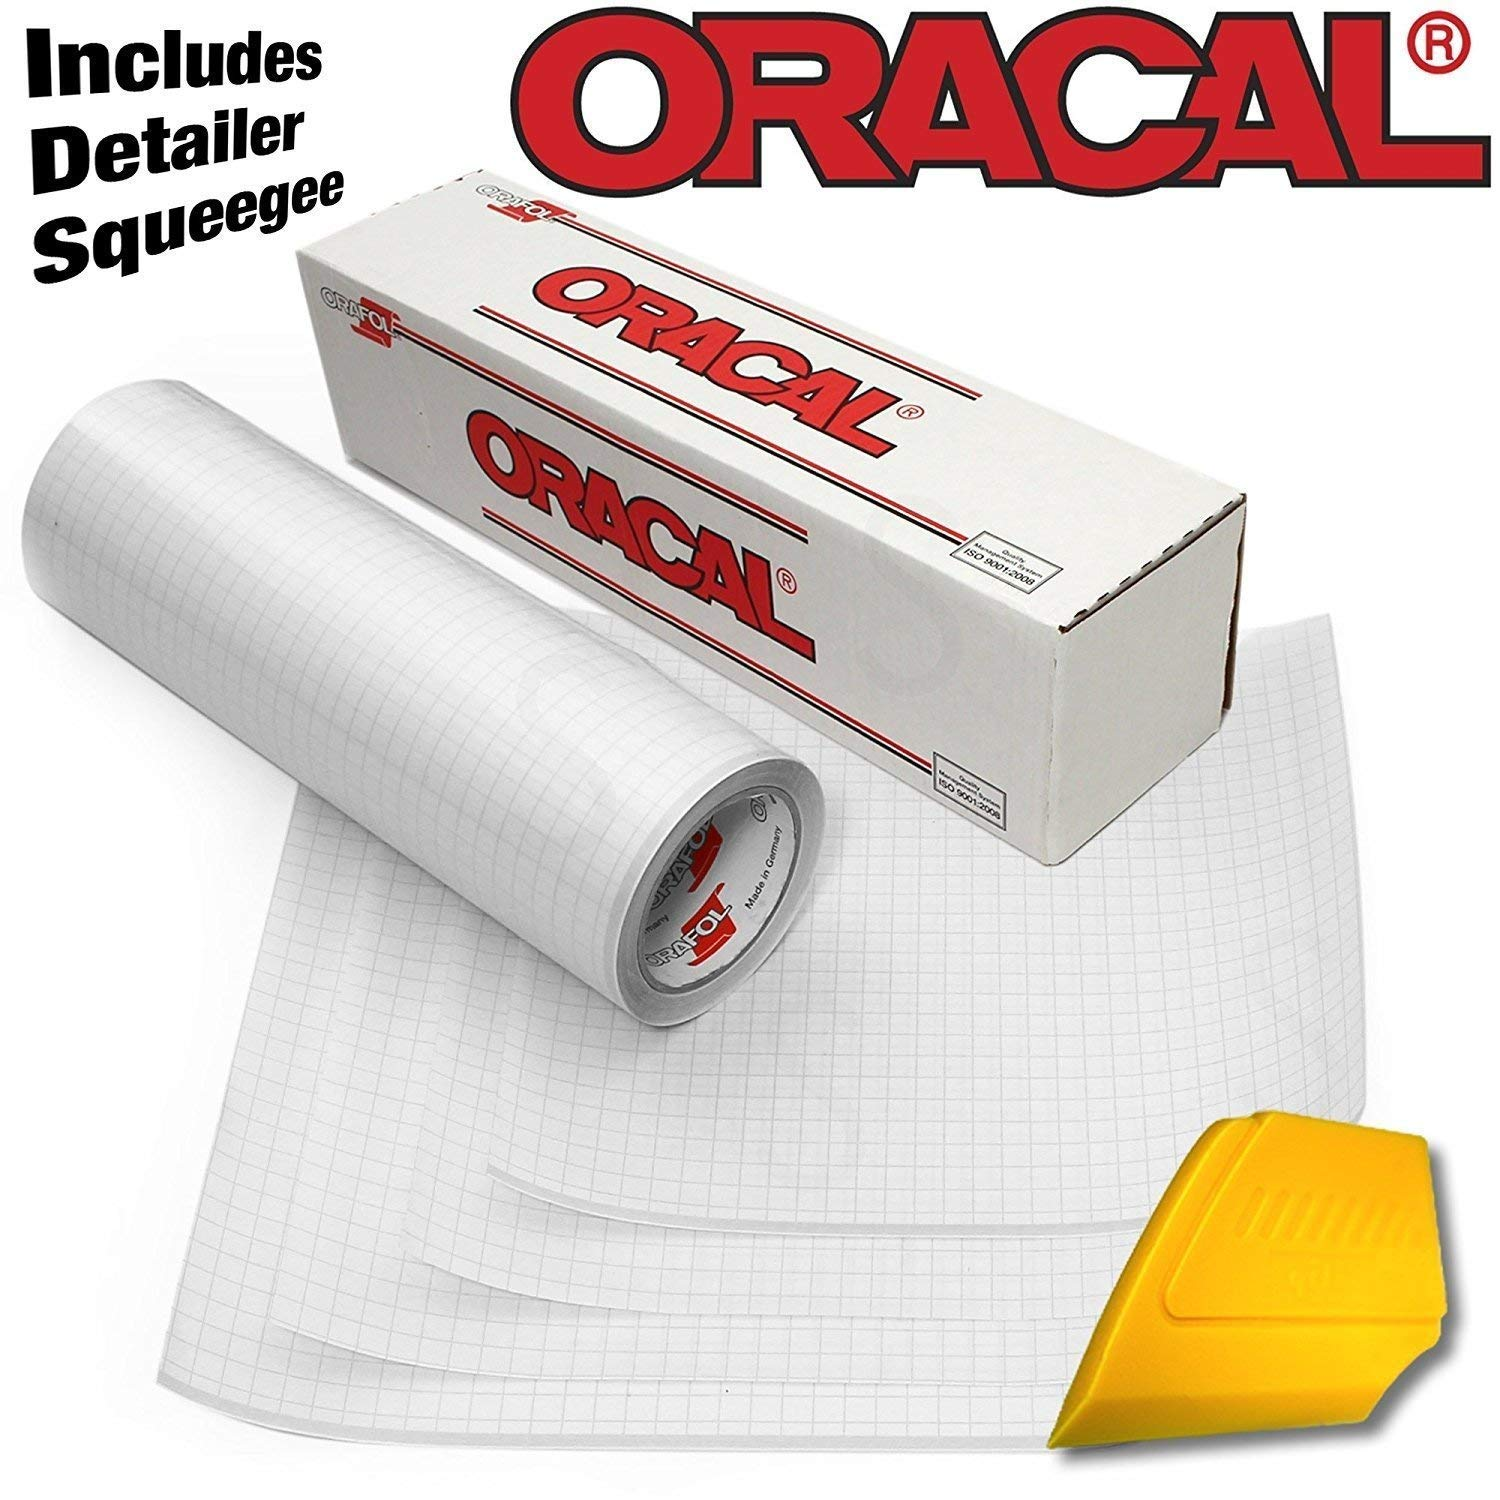 12 x 15ft ORACAL Clear Transfer Paper Tape 15ft Roll w// Hard Yellow Detailer Squeegee